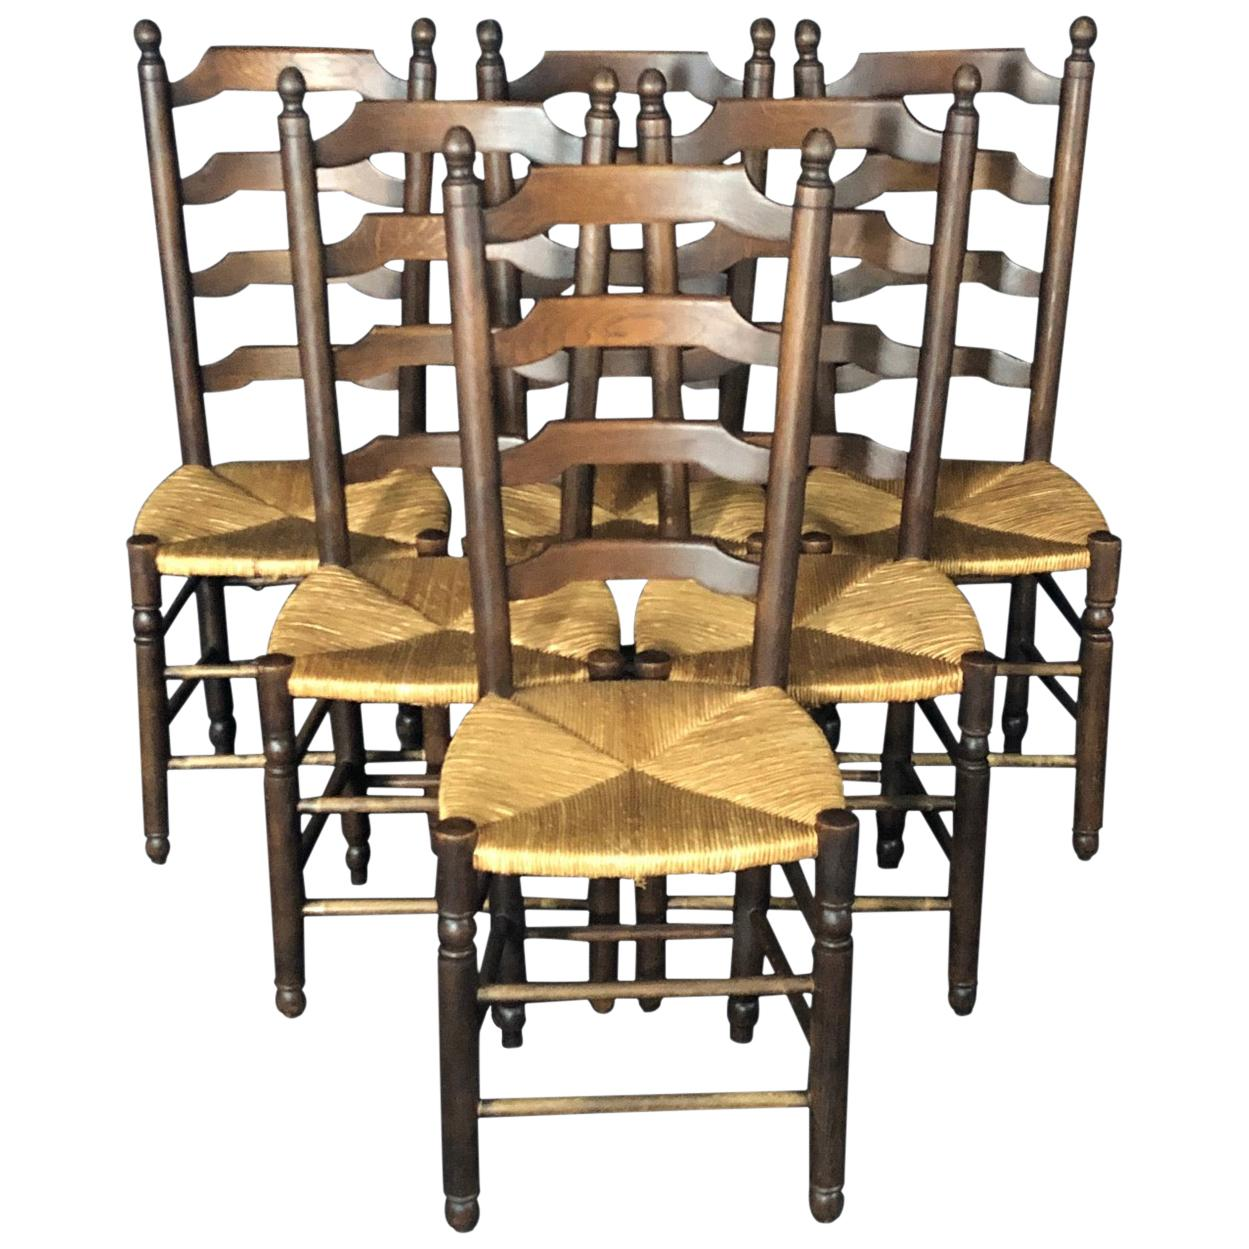 Set of Six French Country Ladderback Chairs with Rush Seats